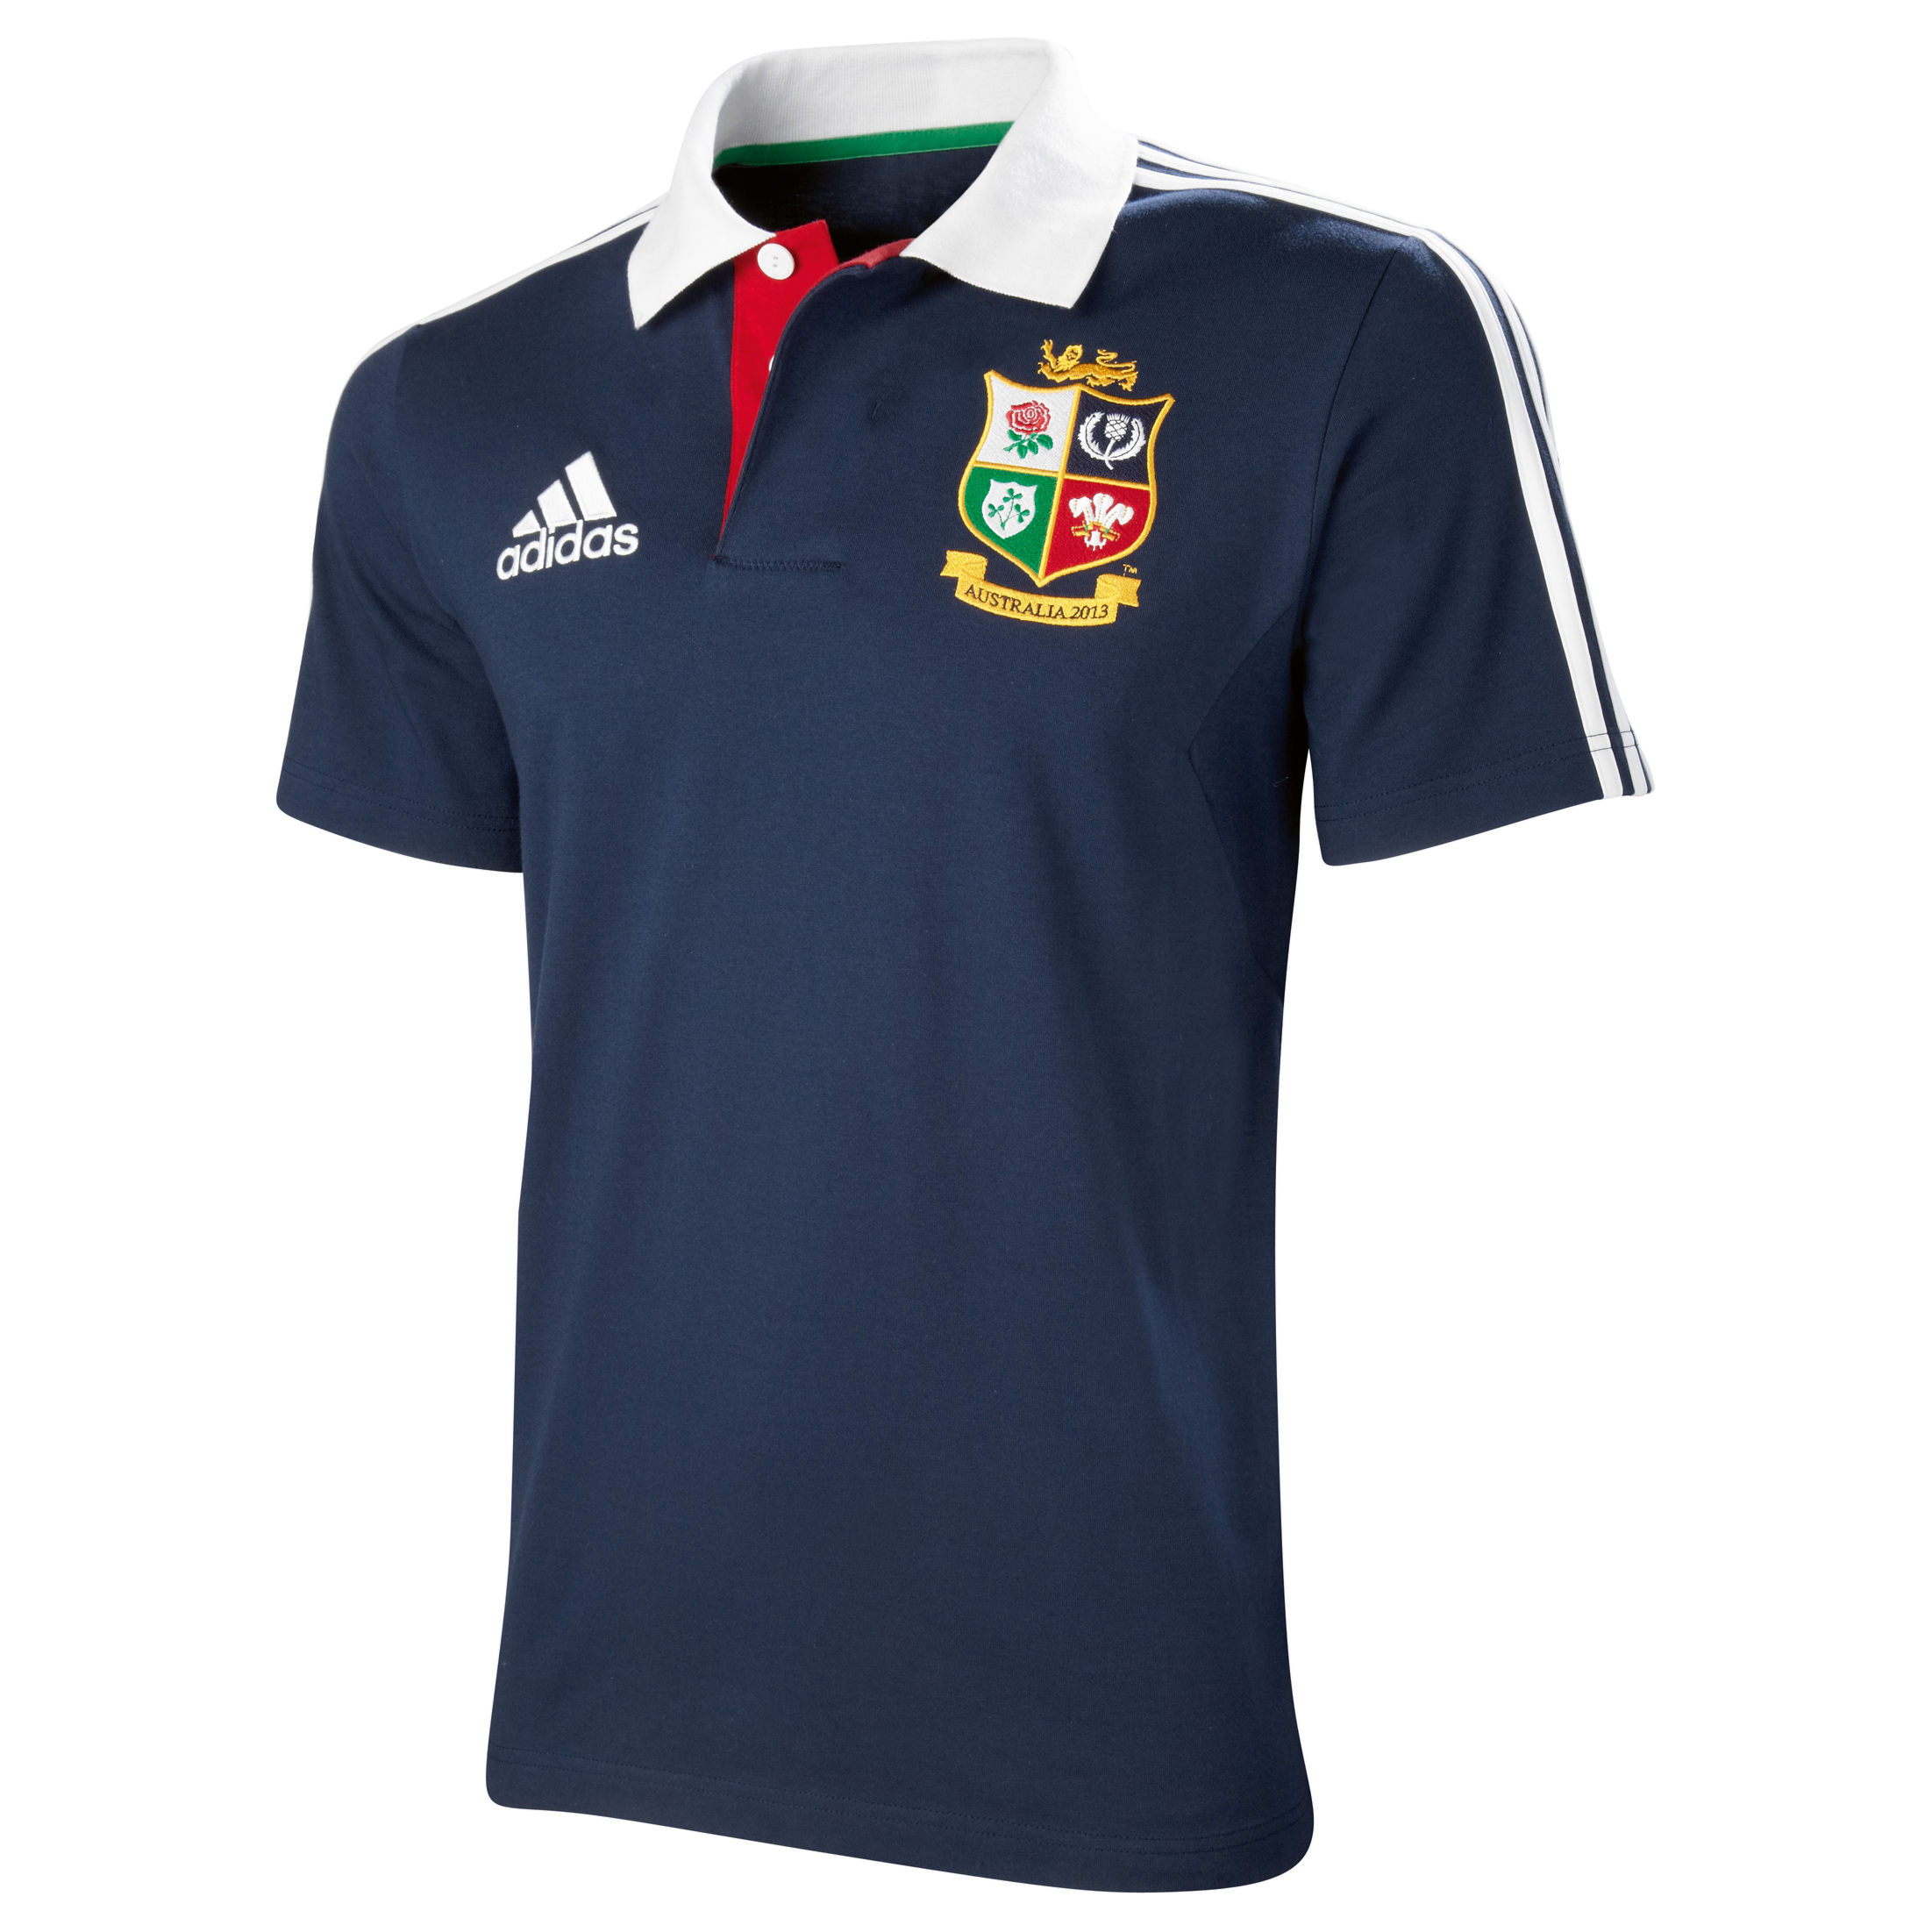 adidas British and Irish Lions Polo - Collegiate Navy/White